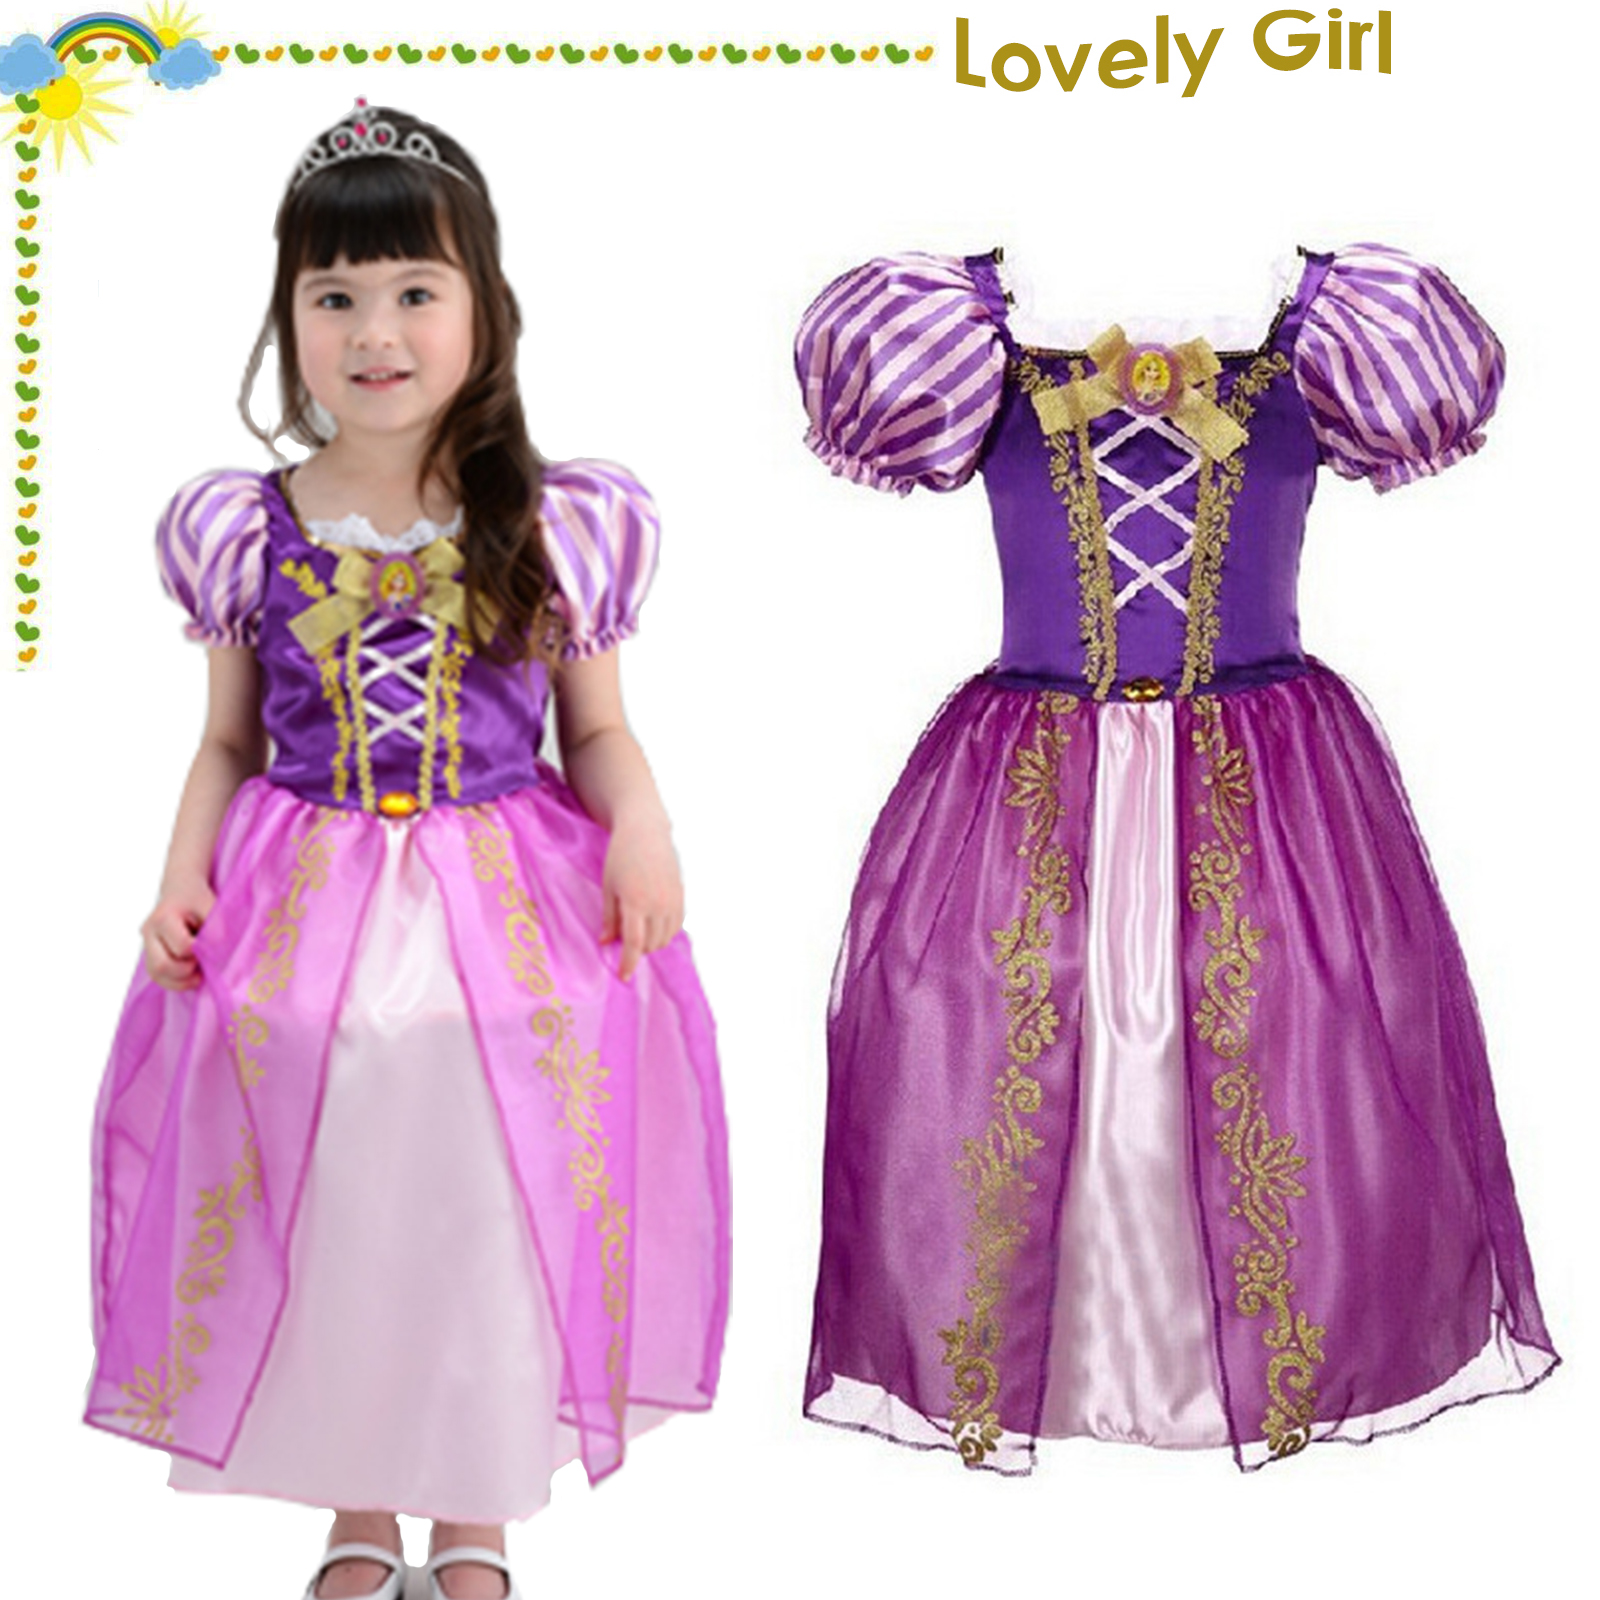 78bd516e74bd Girls Rapunzel Fancy Dress Tangled Classic Princess Cosplay Costume Party  Outfit